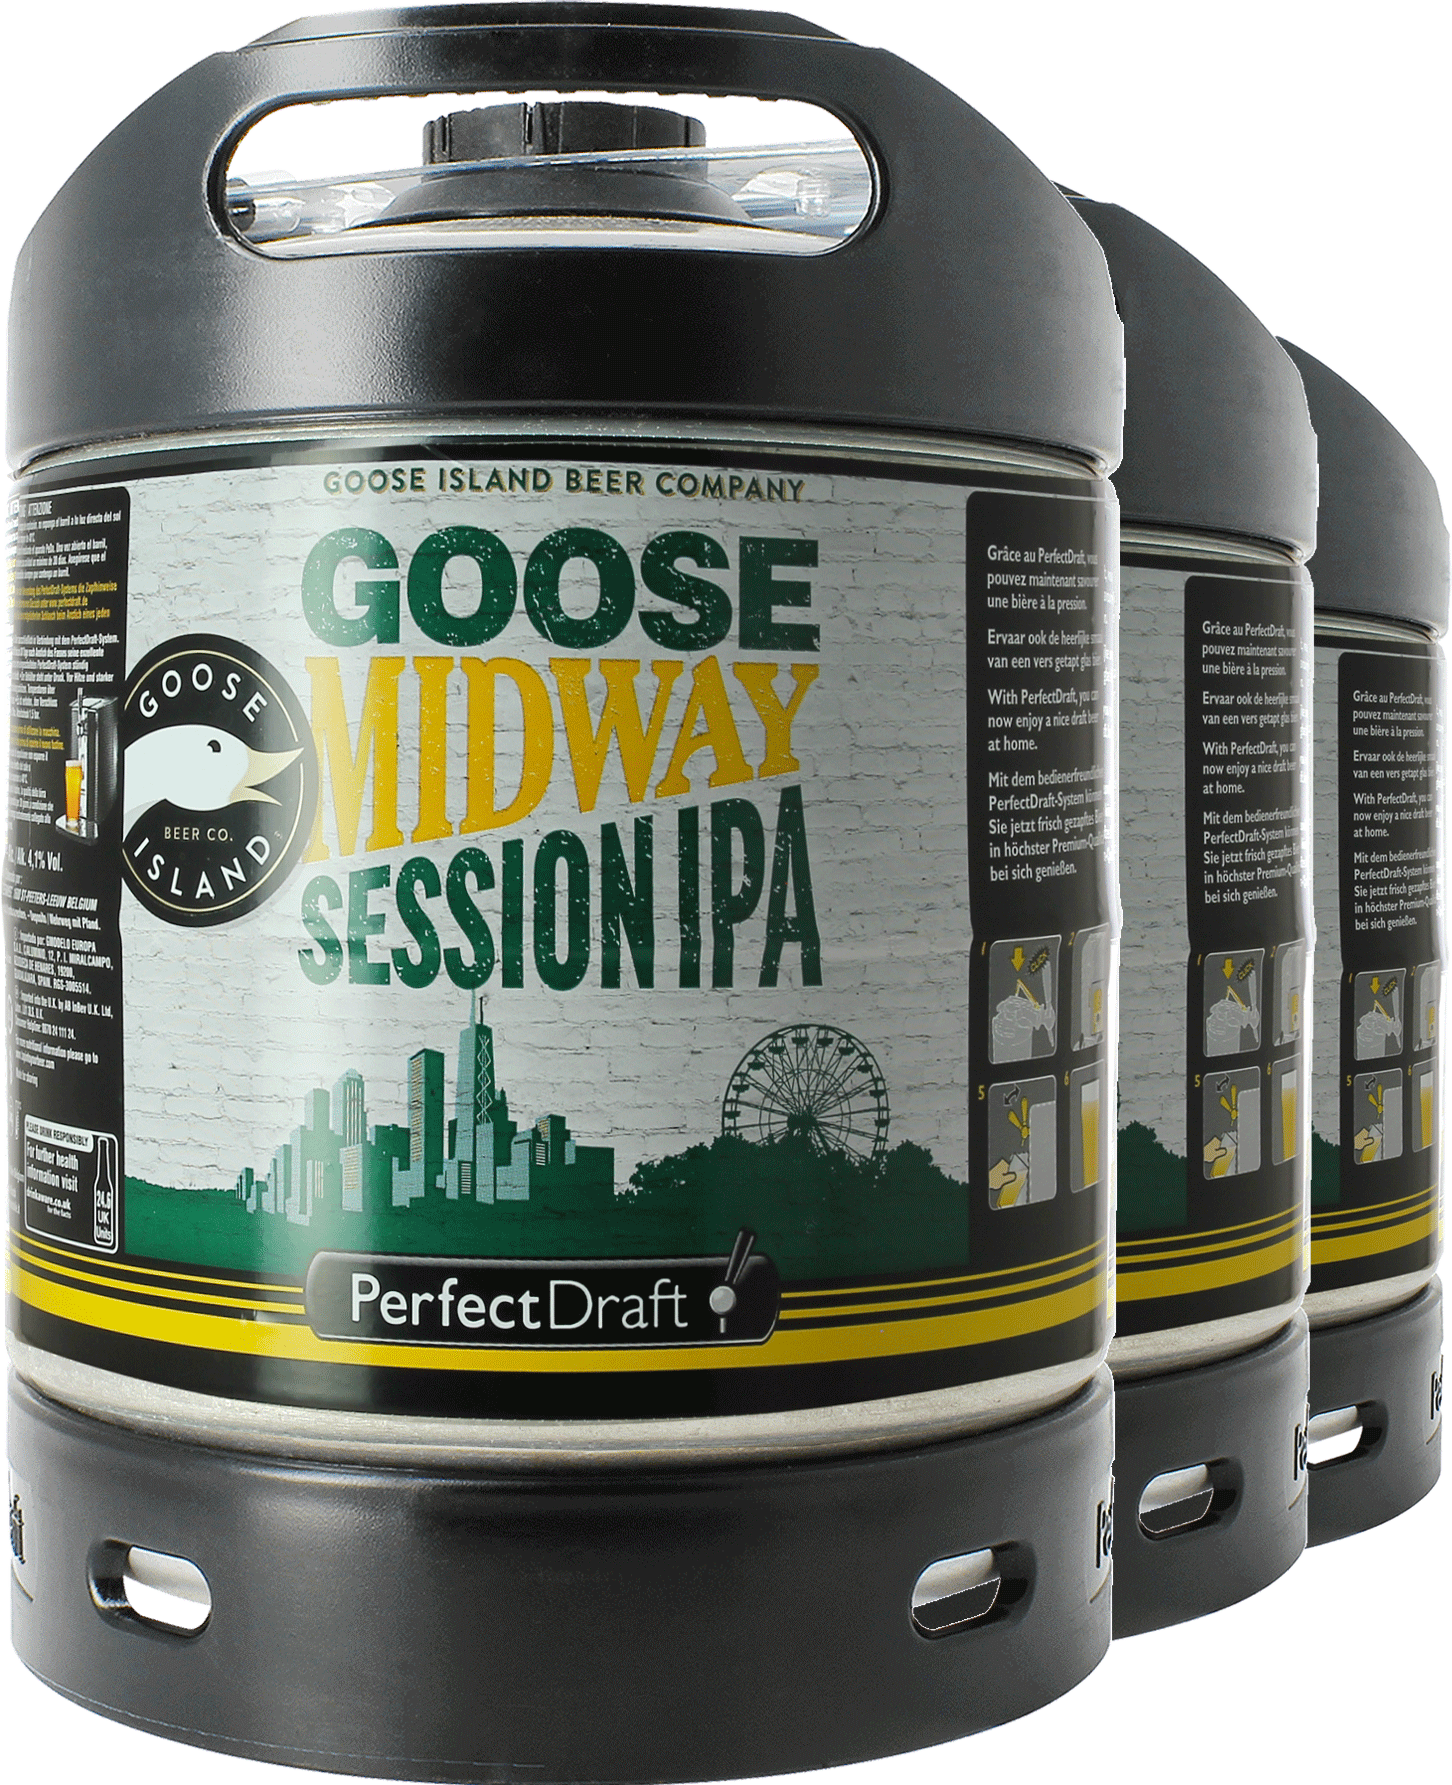 Goose Midway Session IPA PerfectDraft 6-litre Barril - 3-Pack